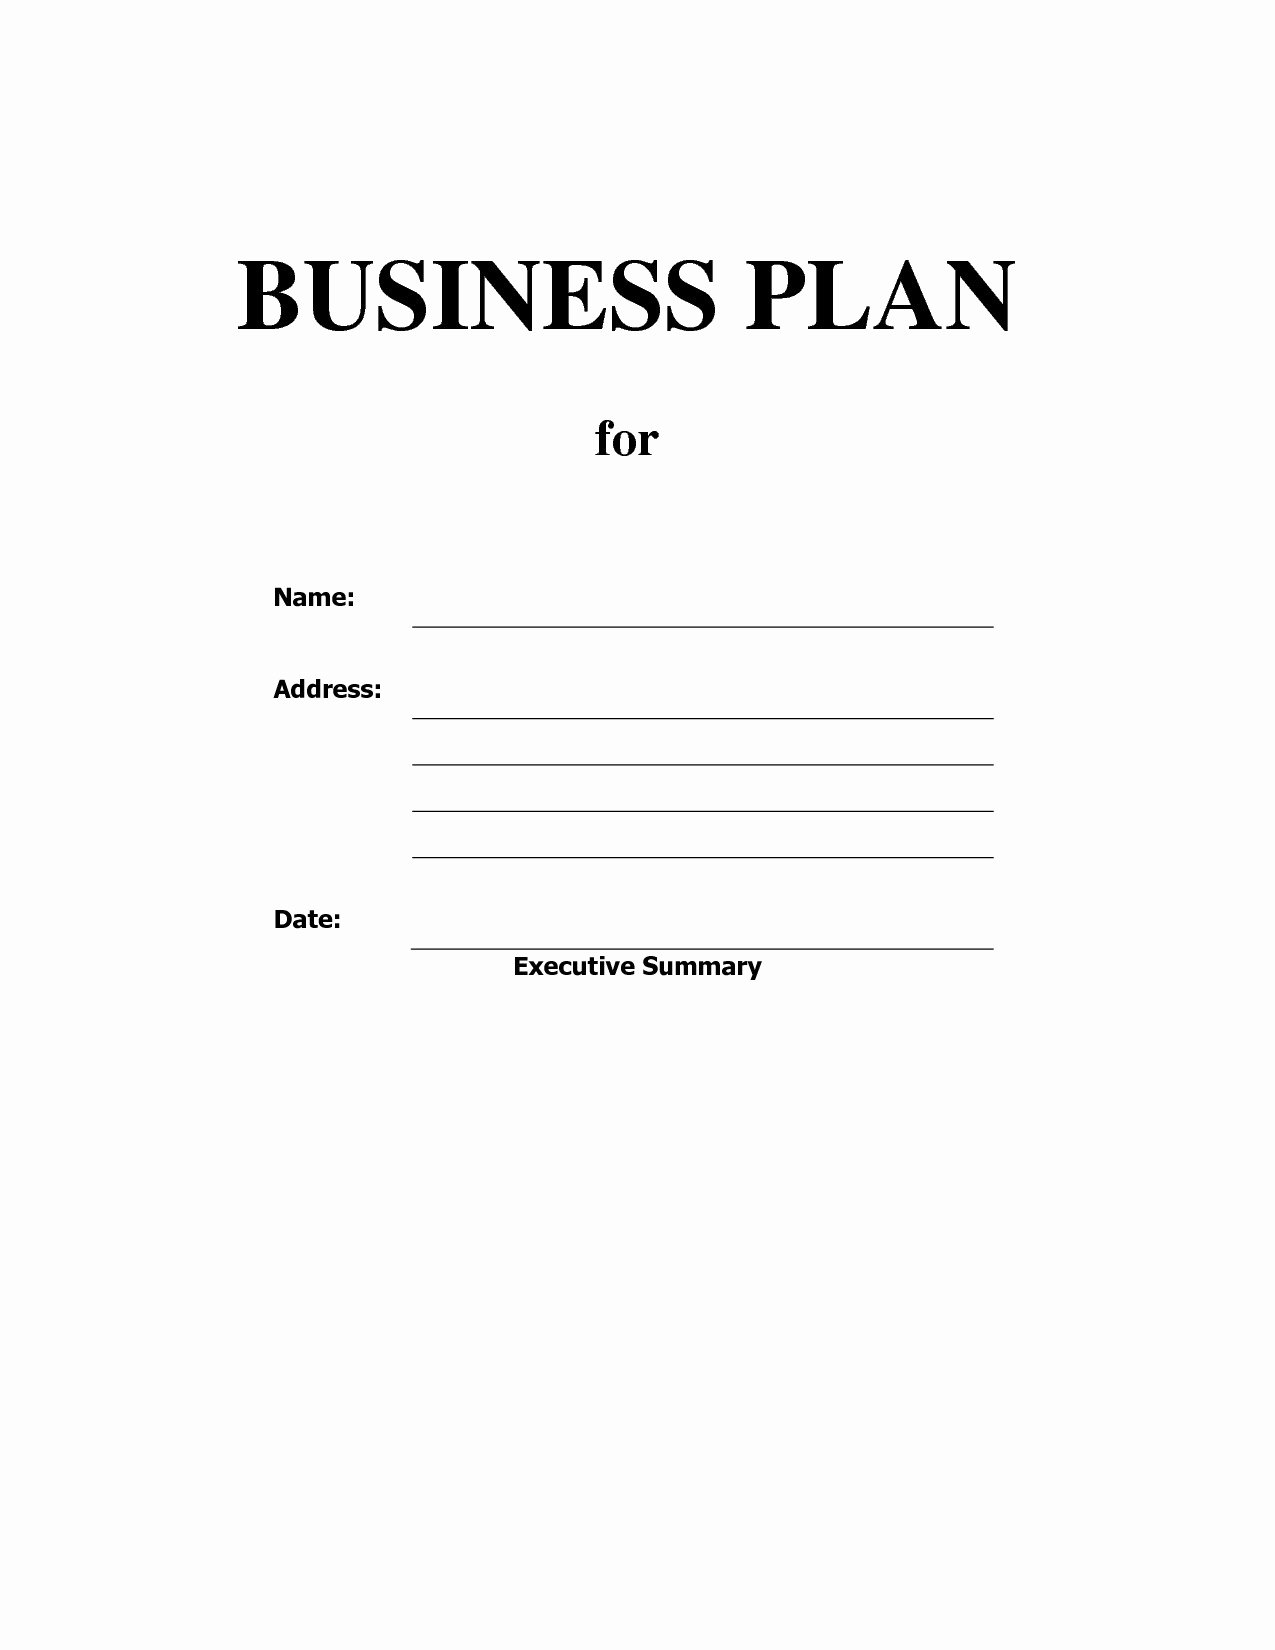 Fill In the Blank Business Plan Template Blank Business